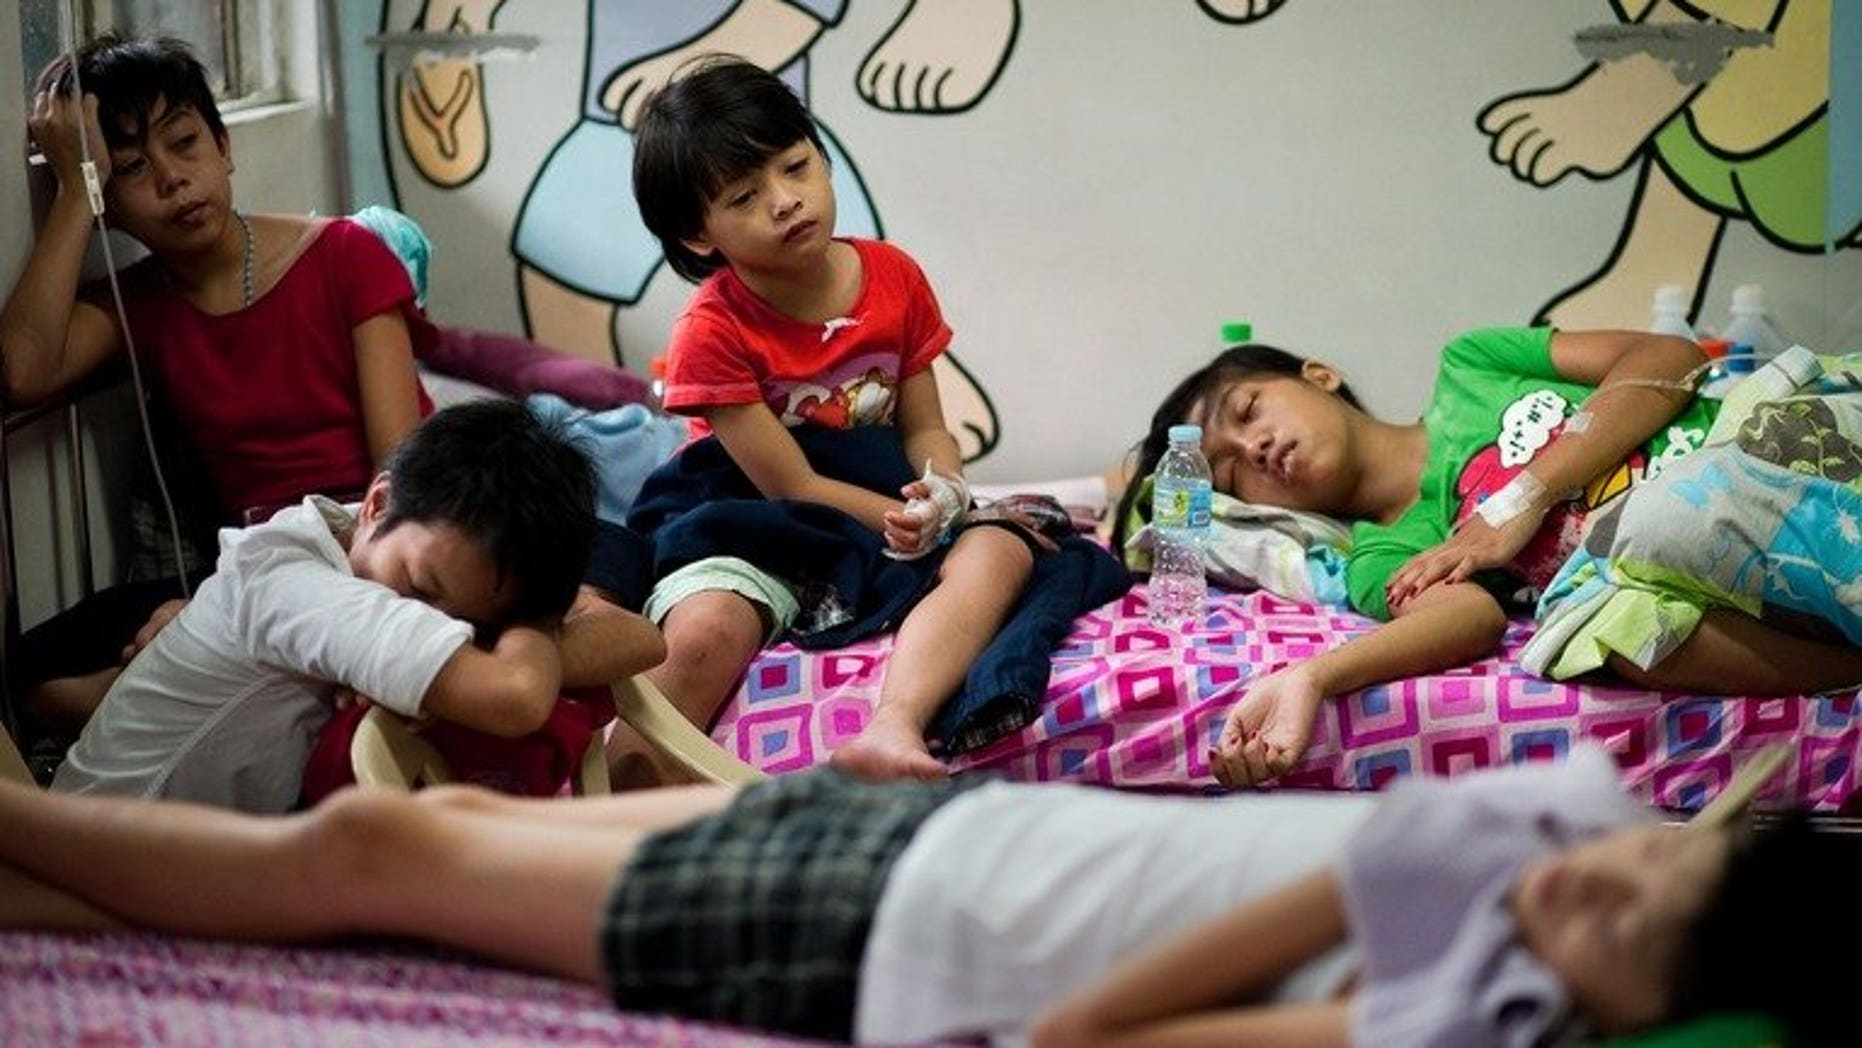 Patients with dengue fever share beds at a hospital in Quezon city, in the suburbs of Manila, on August 14, 2012. Dengue fever has surged in the central Philippines, infecting more than 1,800 people and killing at least ten, a provincial official says.